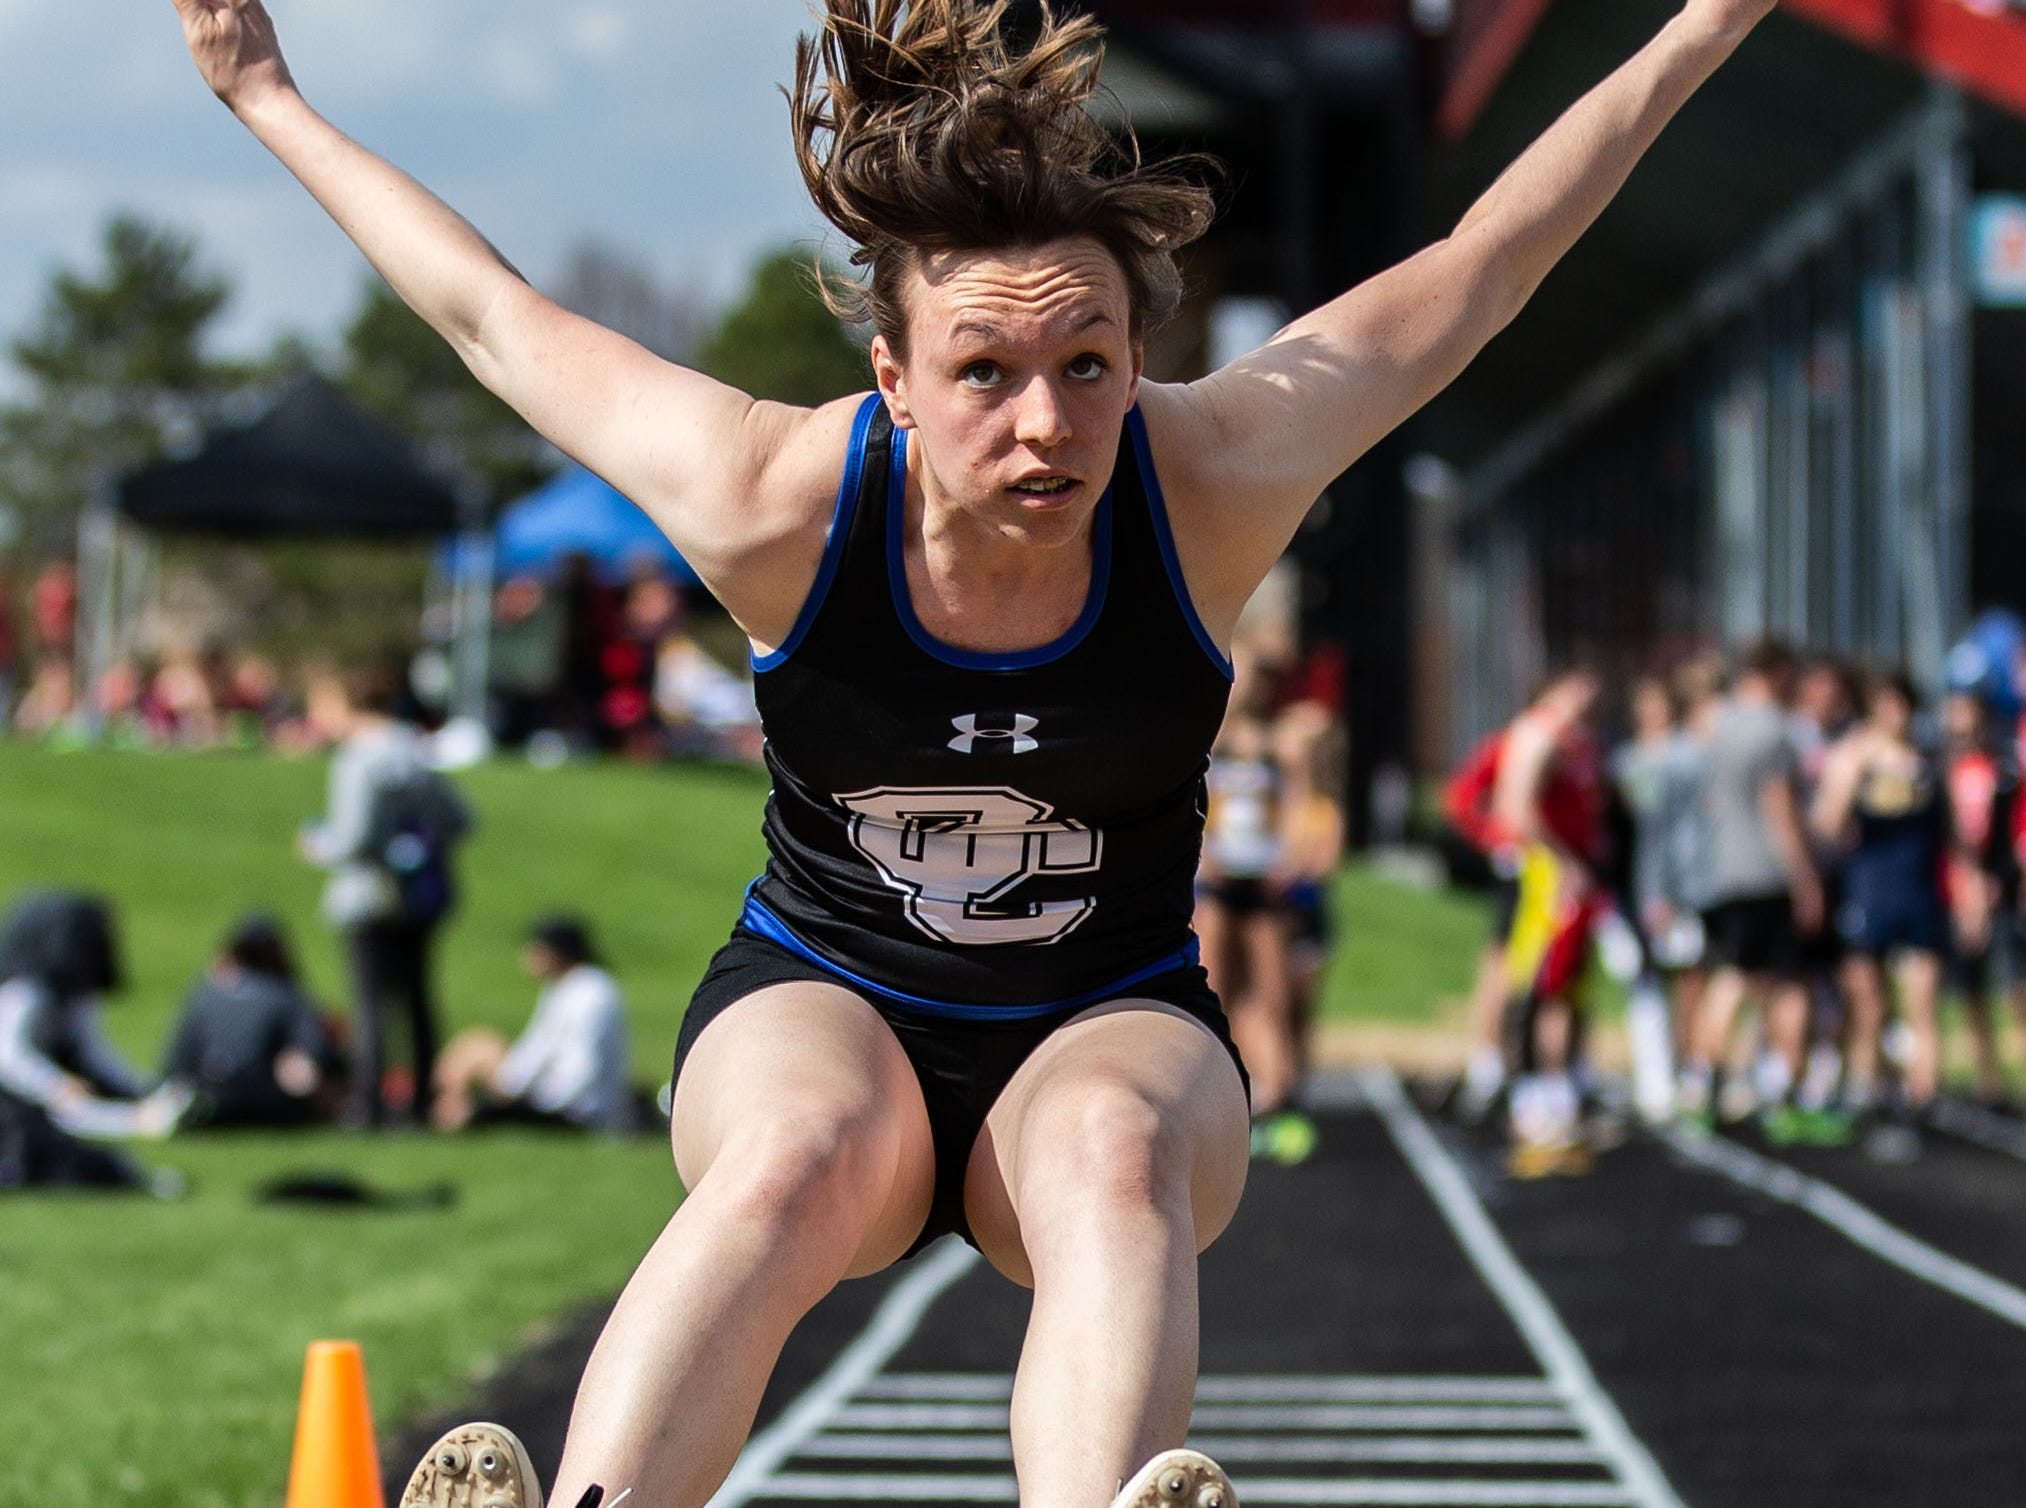 Oak Creek junior Carolyn Sladky competes in the long jump at the 2019 Myrhum Invitational track and field meet in Hartland on Saturday, May 4.